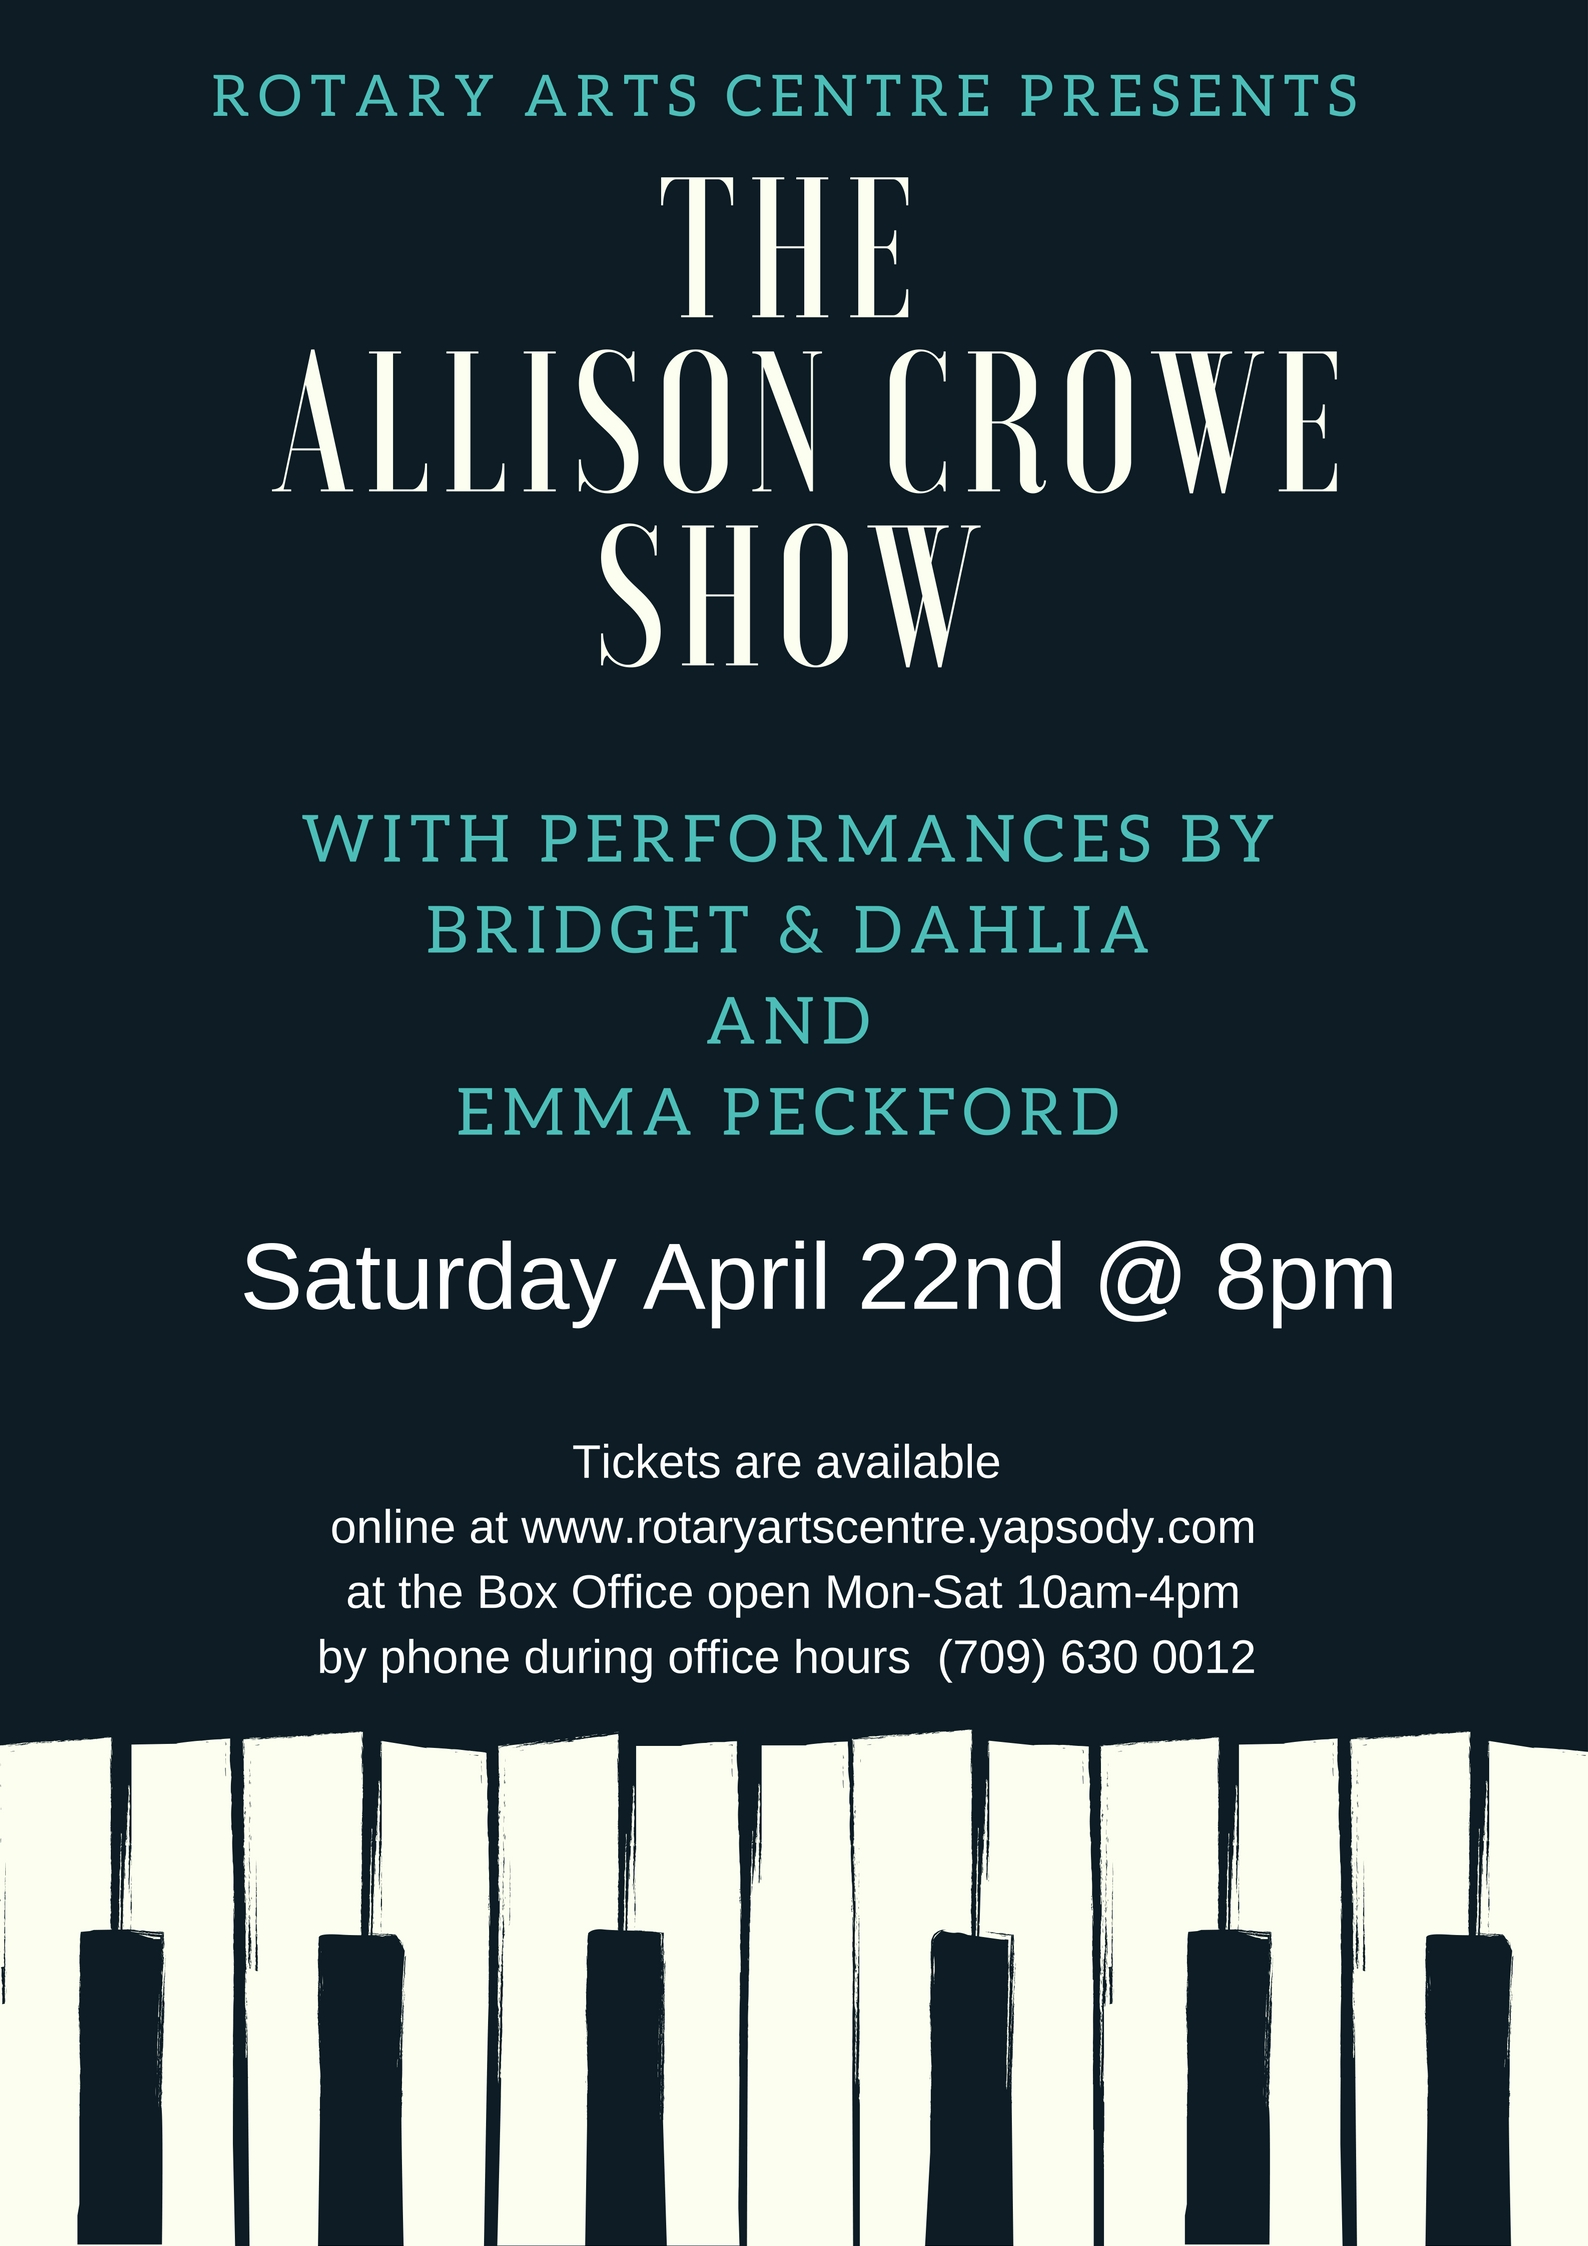 The Allison Crowe Show feat. Bridget & Dahlia, Emma Peckford